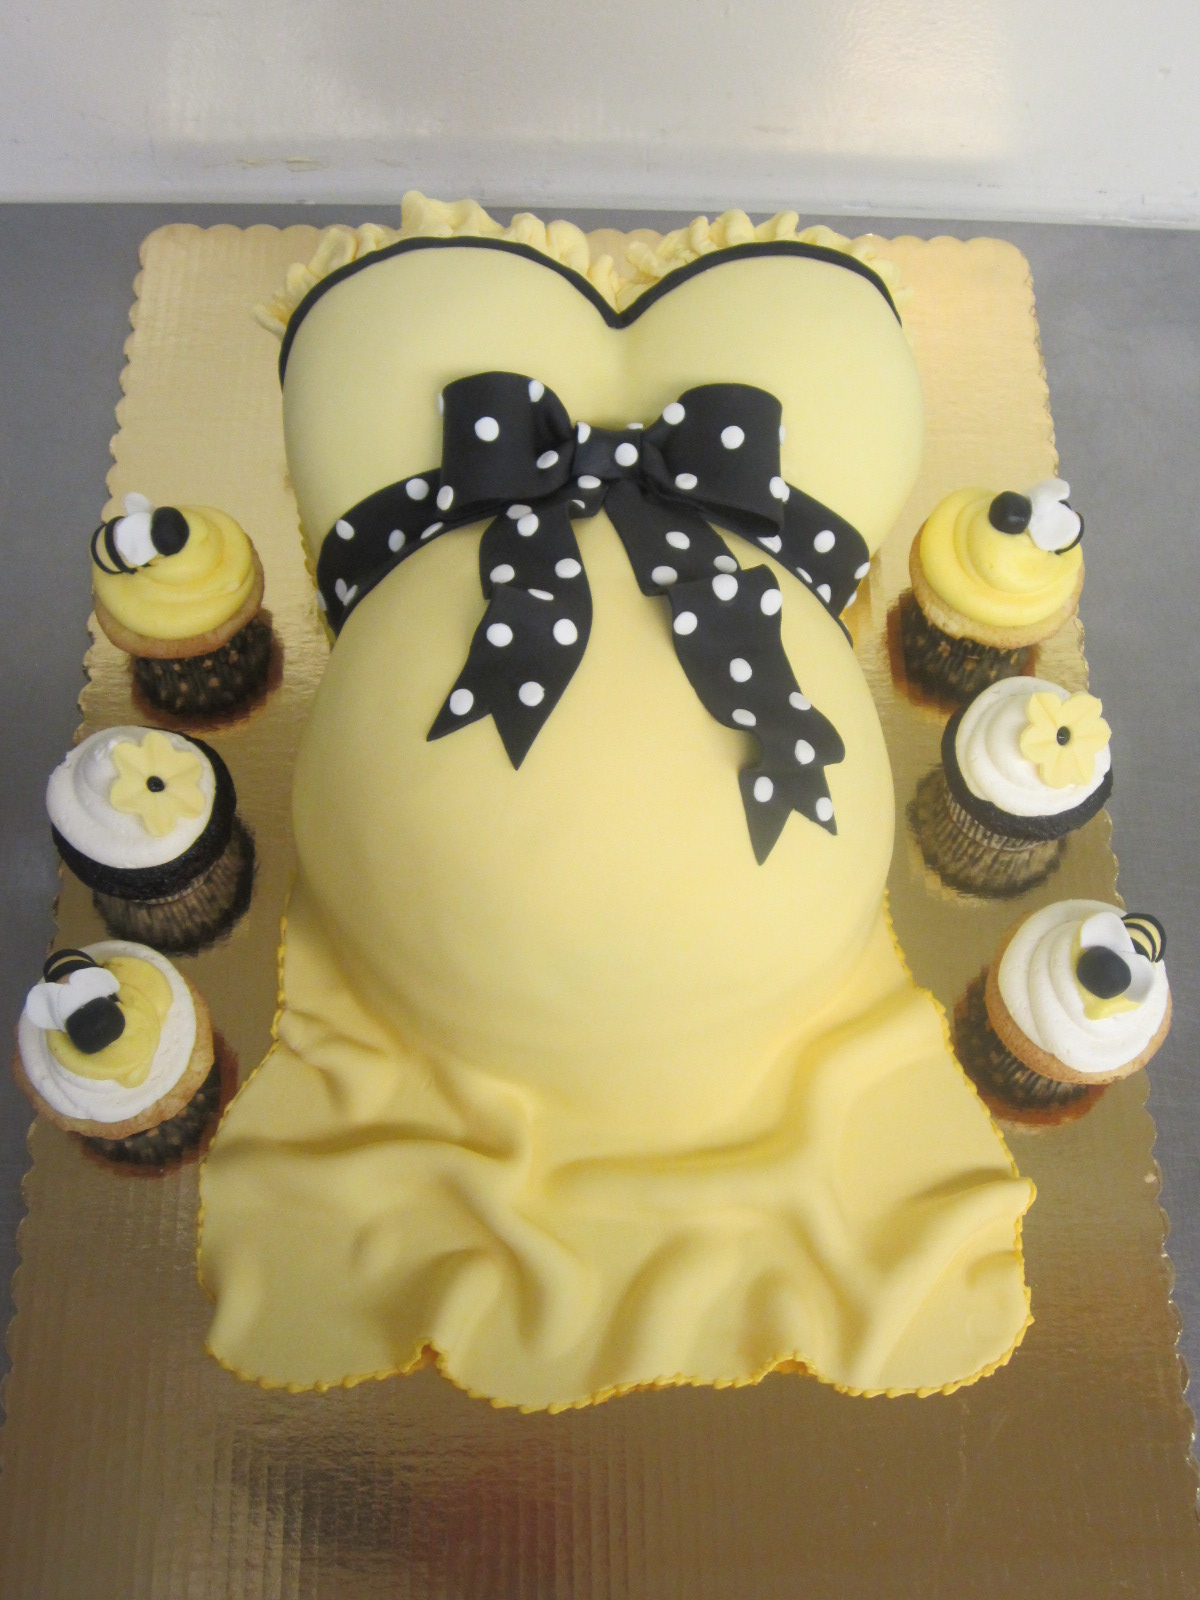 4 Every Occasion Cupcakes & Cakes